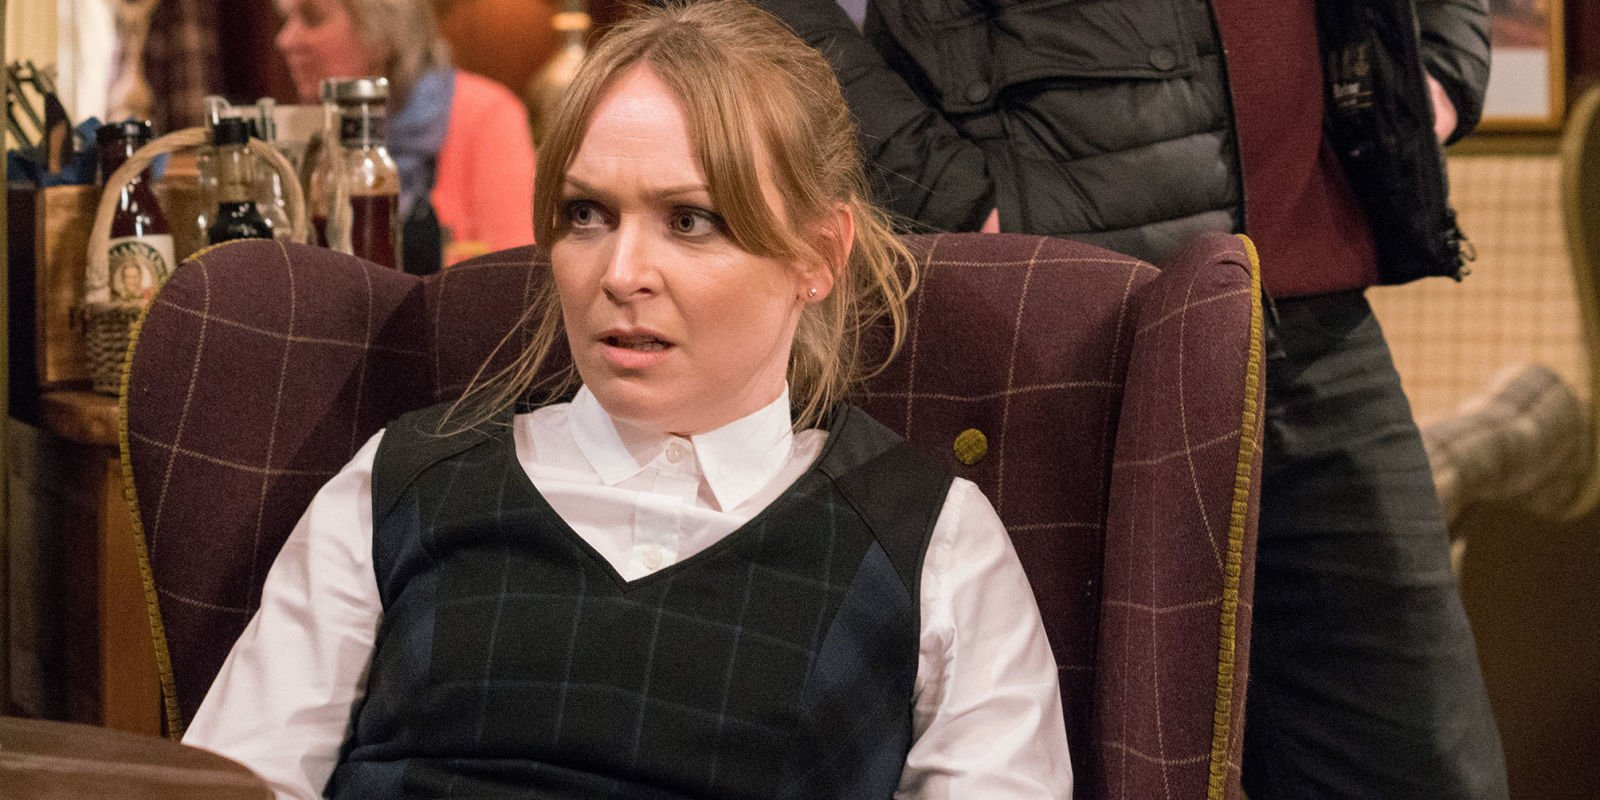 Emmerdale's Vanessa Woodfield fears her career is over after a terrible accident